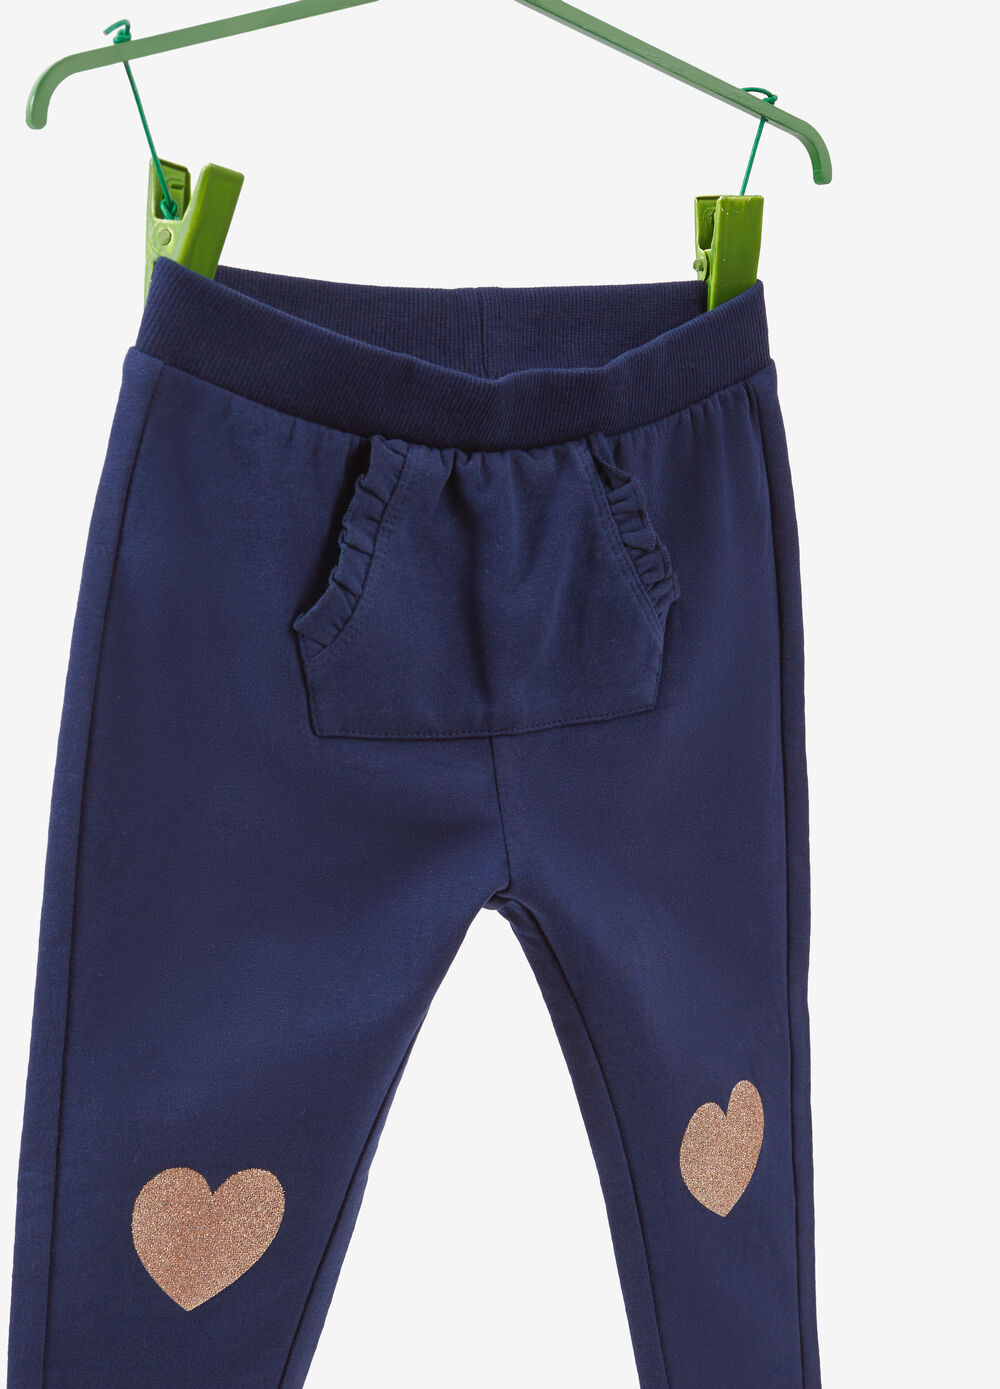 Joggers with glitter hearts print